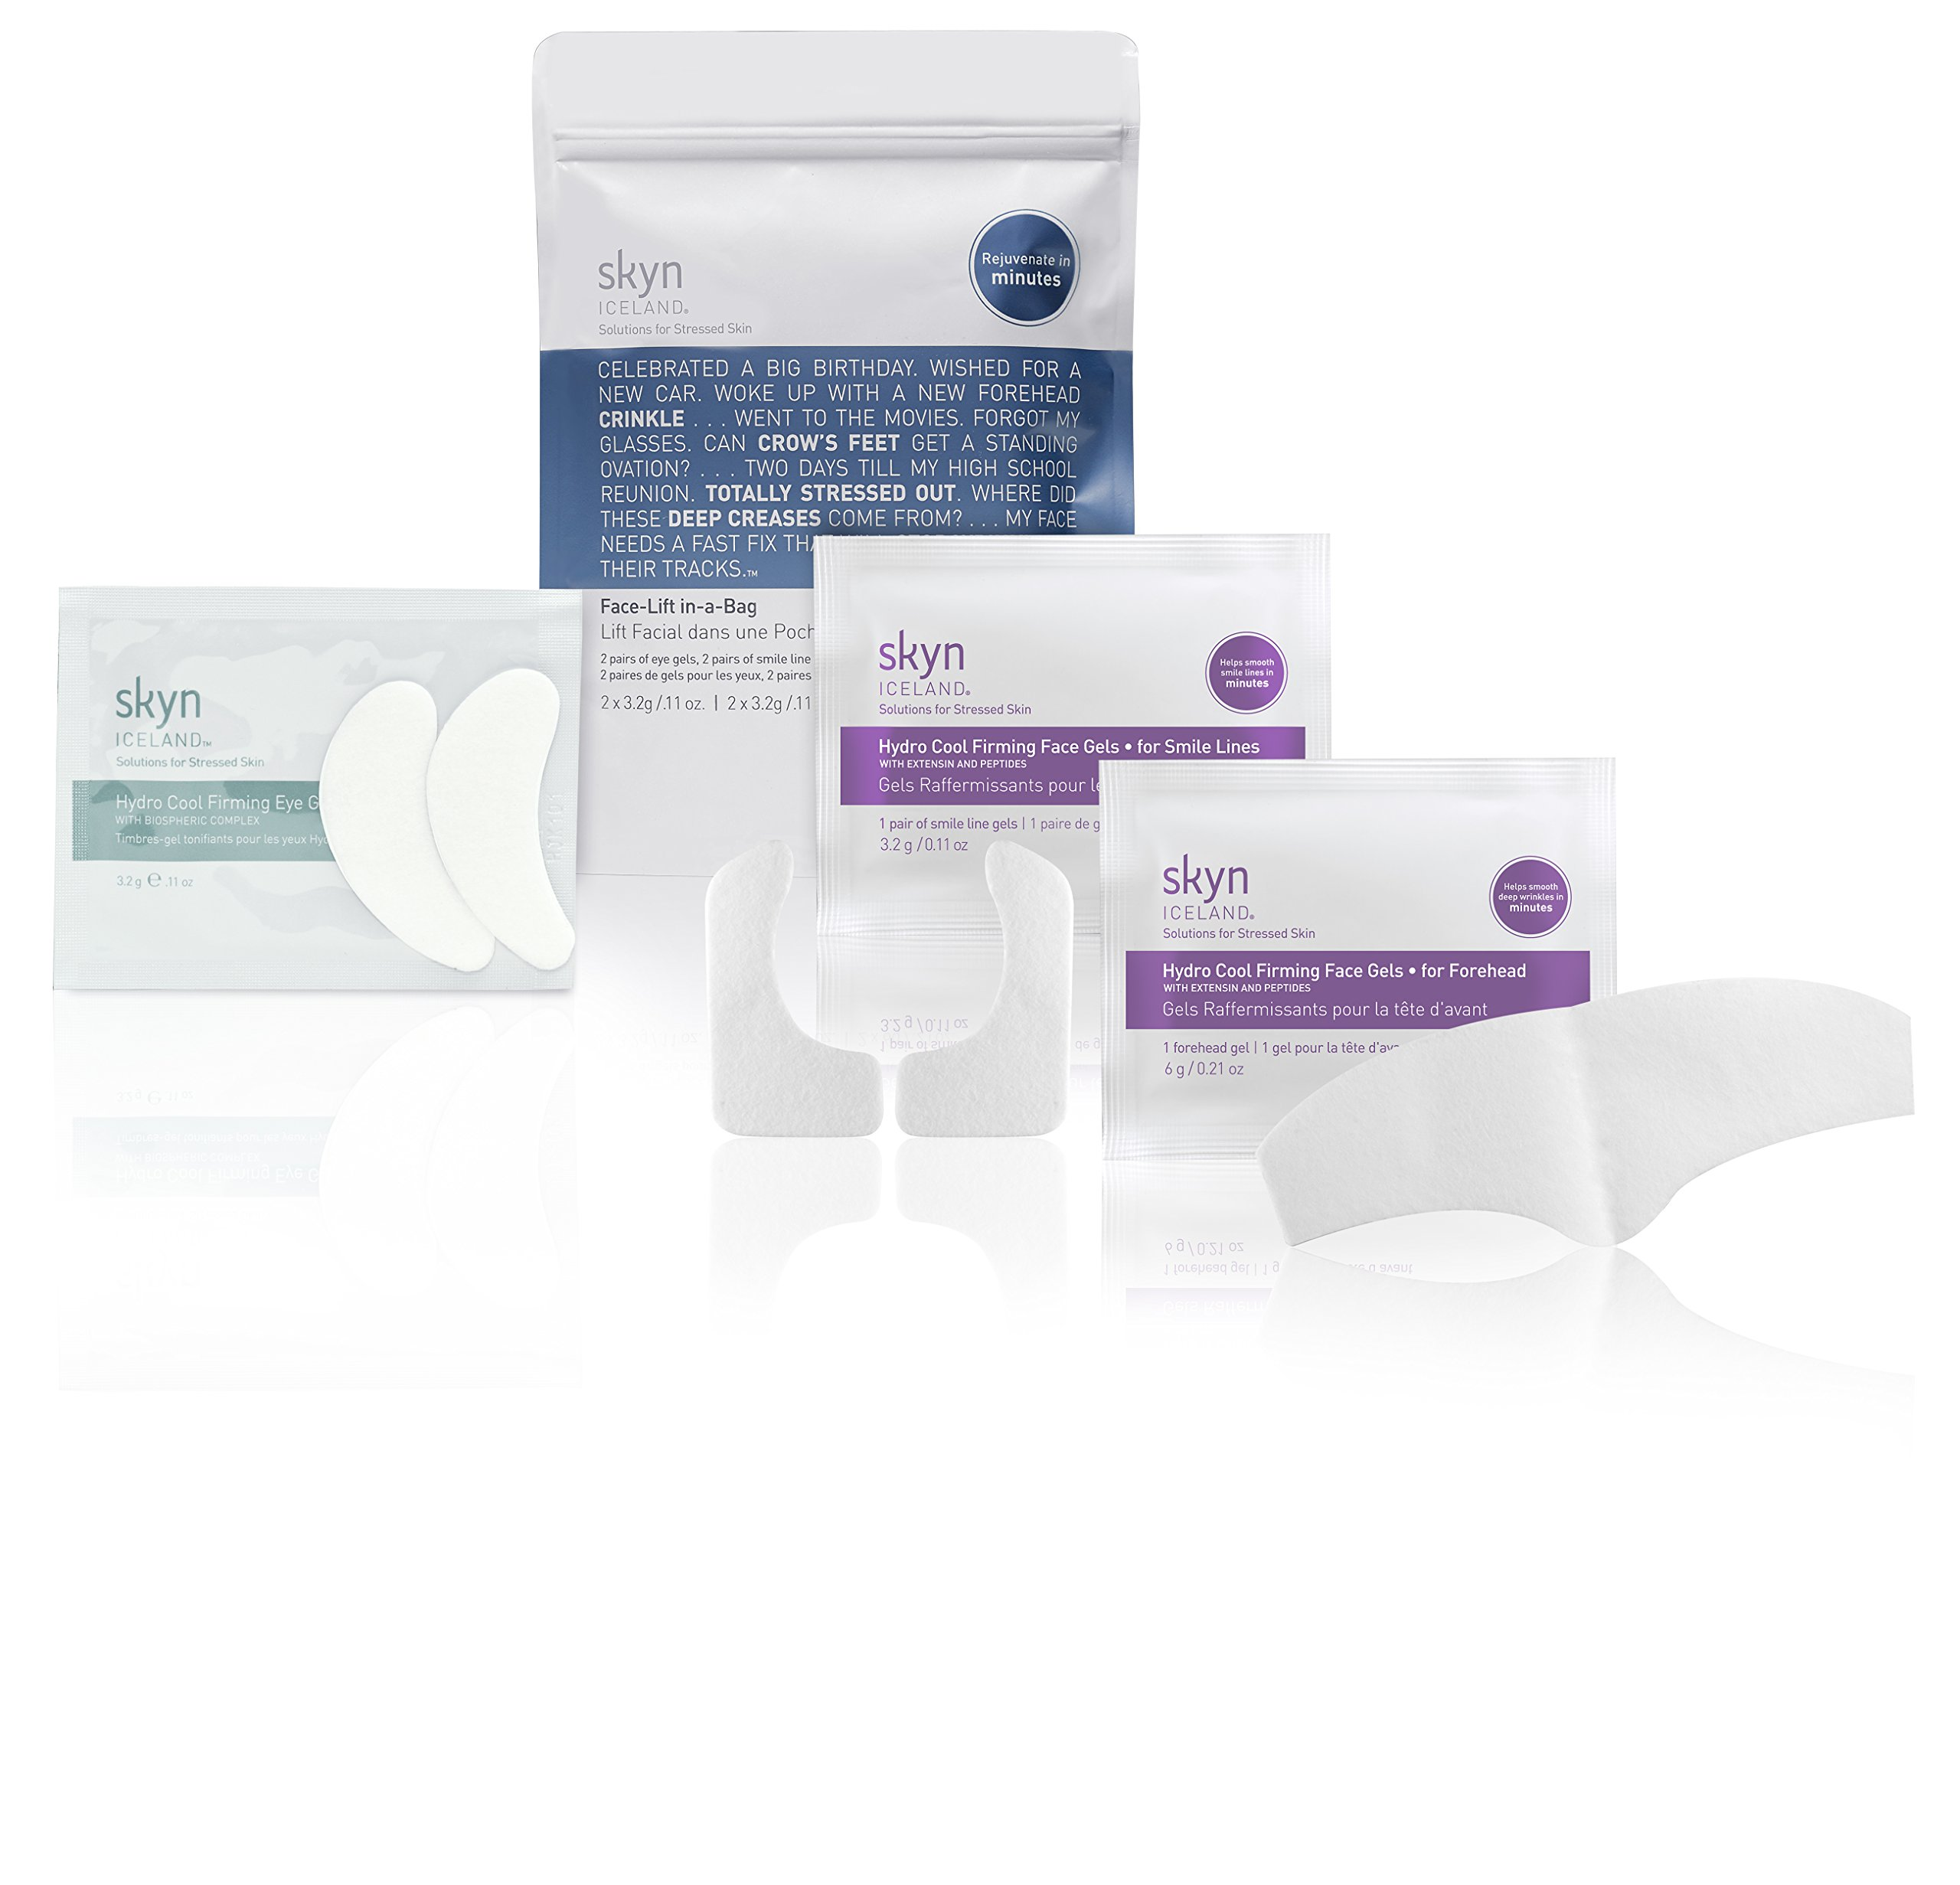 skyn ICELAND Face Lift in a Bag, 1 oz.